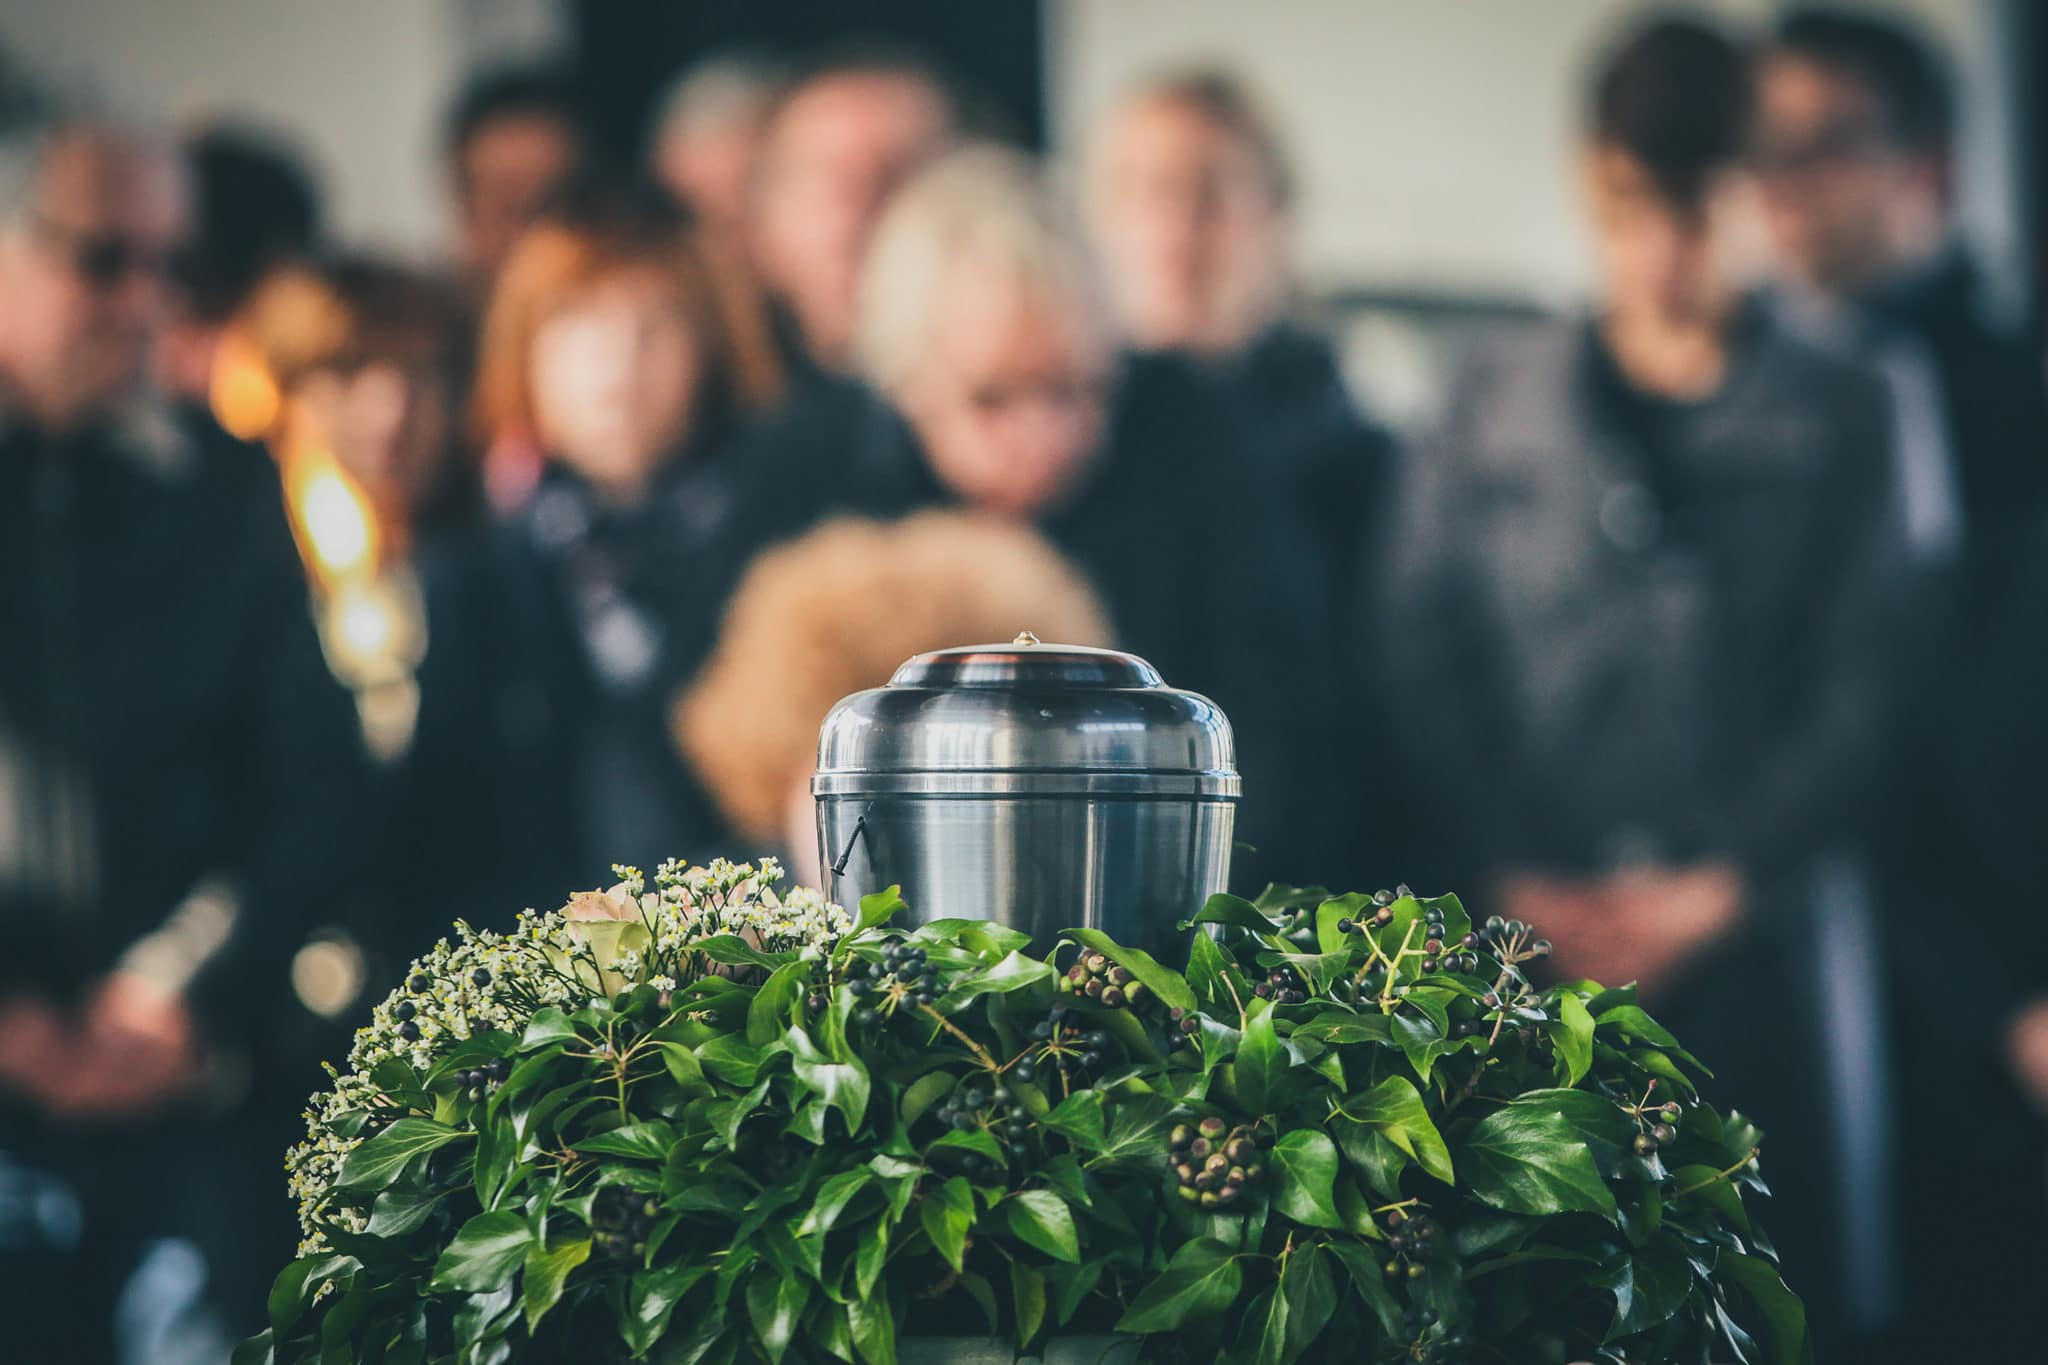 5 Touching Ways To Honor Your Deceased Loved One